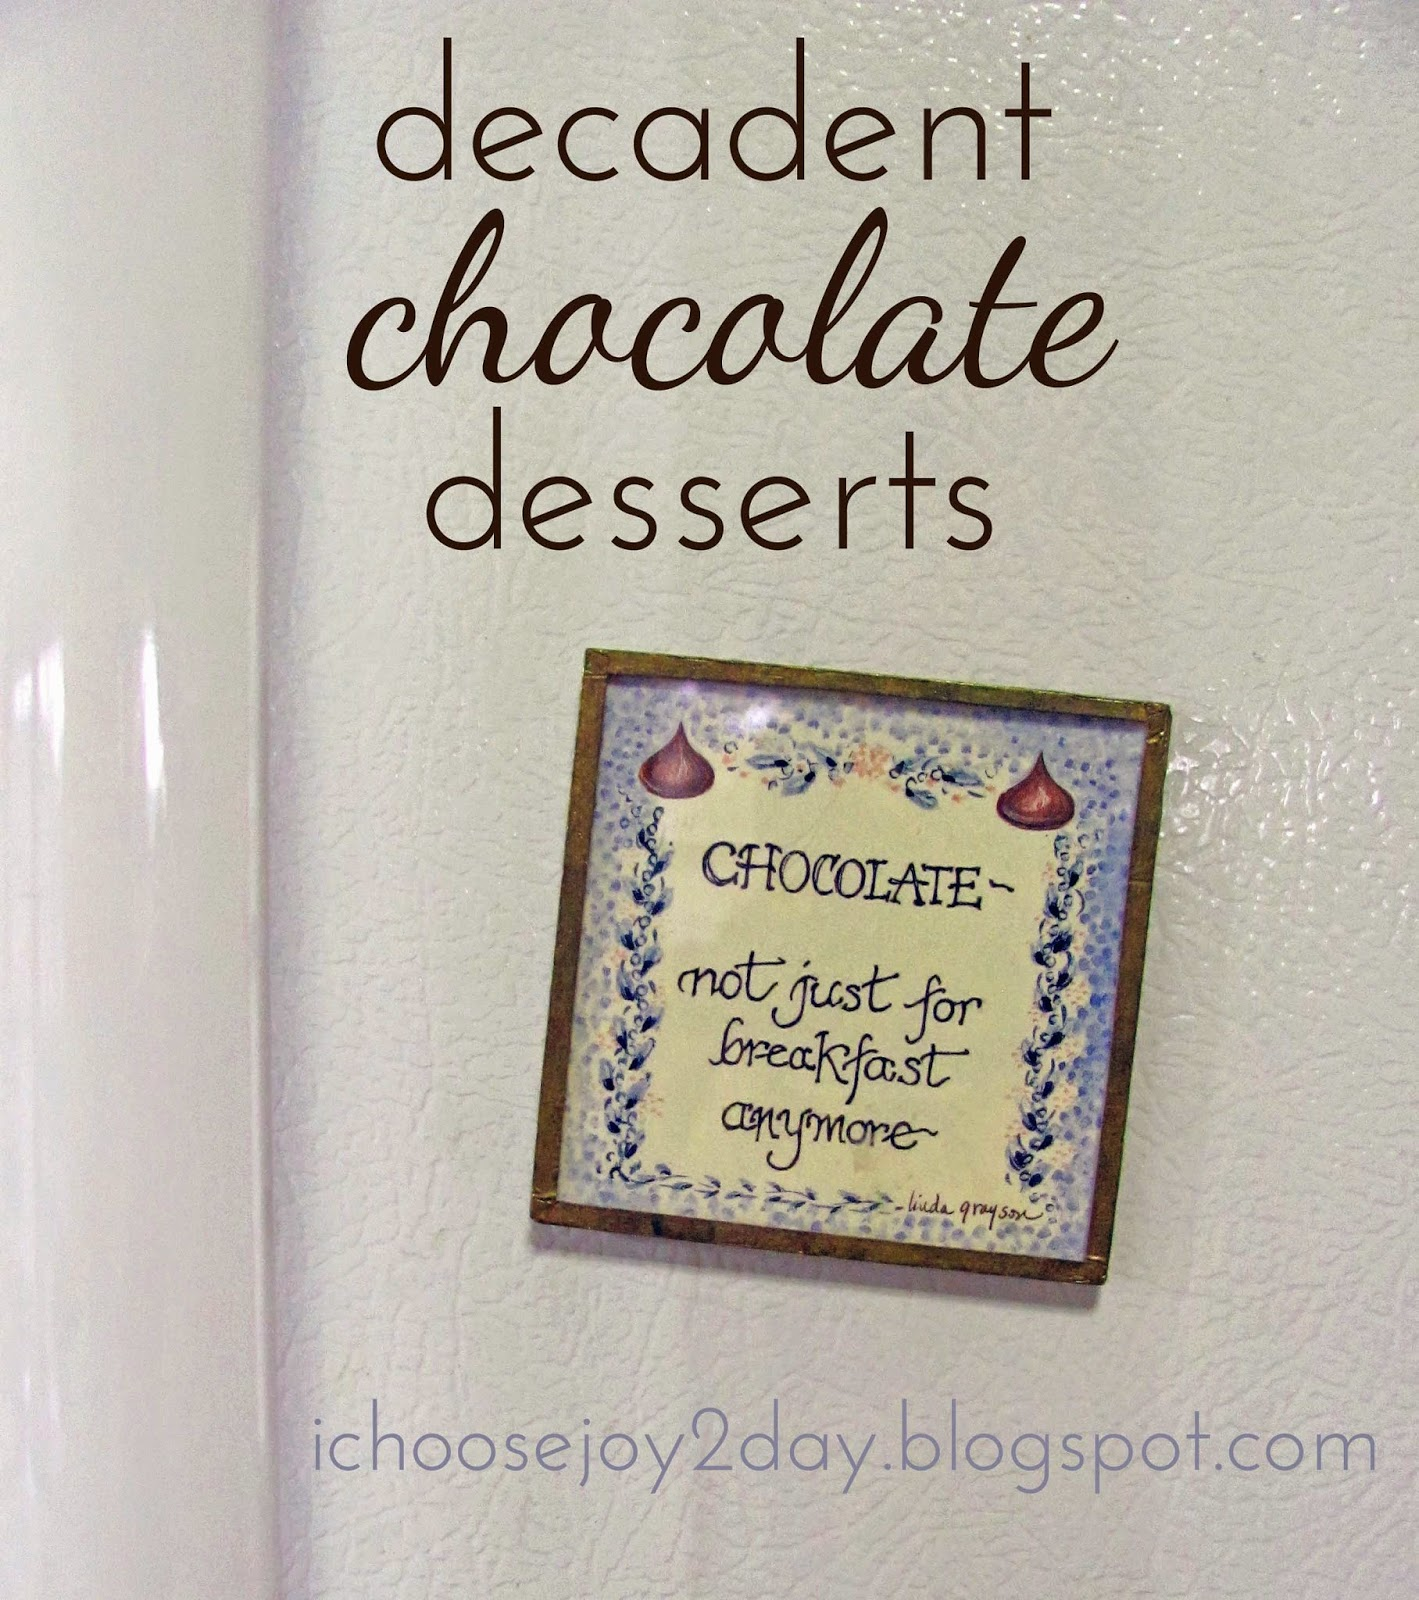 http://ichoosejoy2day.blogspot.com/2014/11/decadent-chocolate-desserts.html